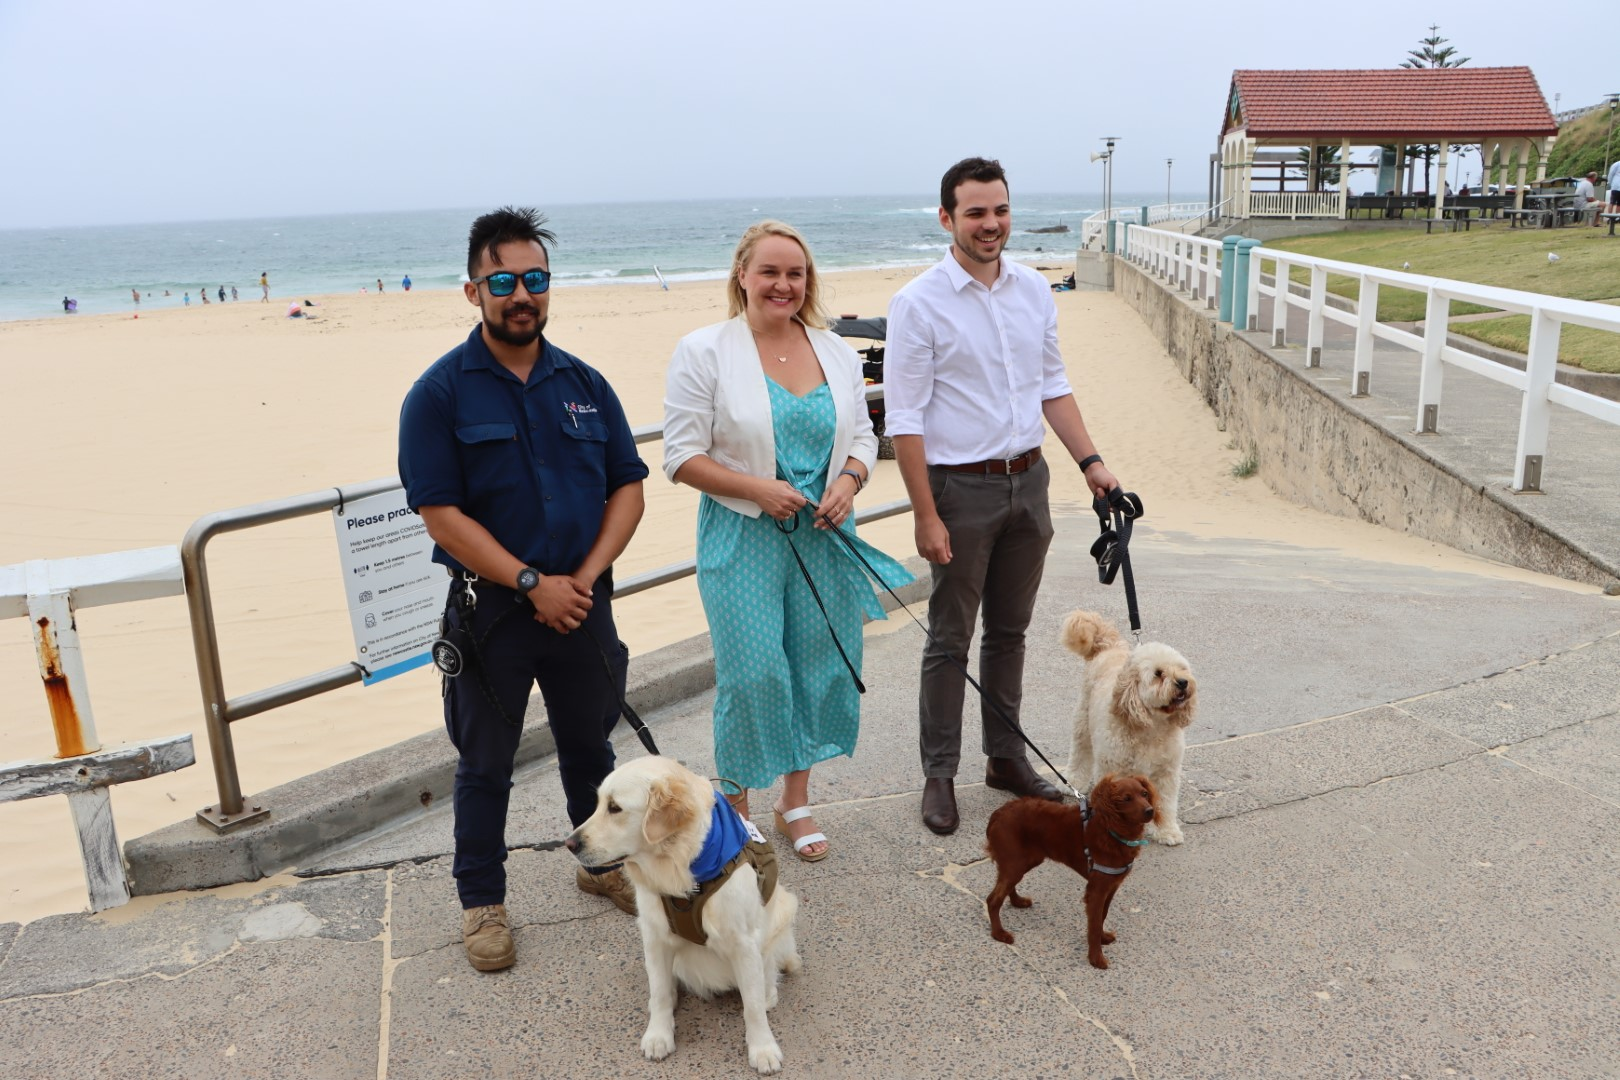 Bella-the-ranger-dog-with-Allan-Hong-Lord-Mayor-Nuatali-Nelmes-and-Deputy-Lord-Mayor-Declan-Clausen.JPG